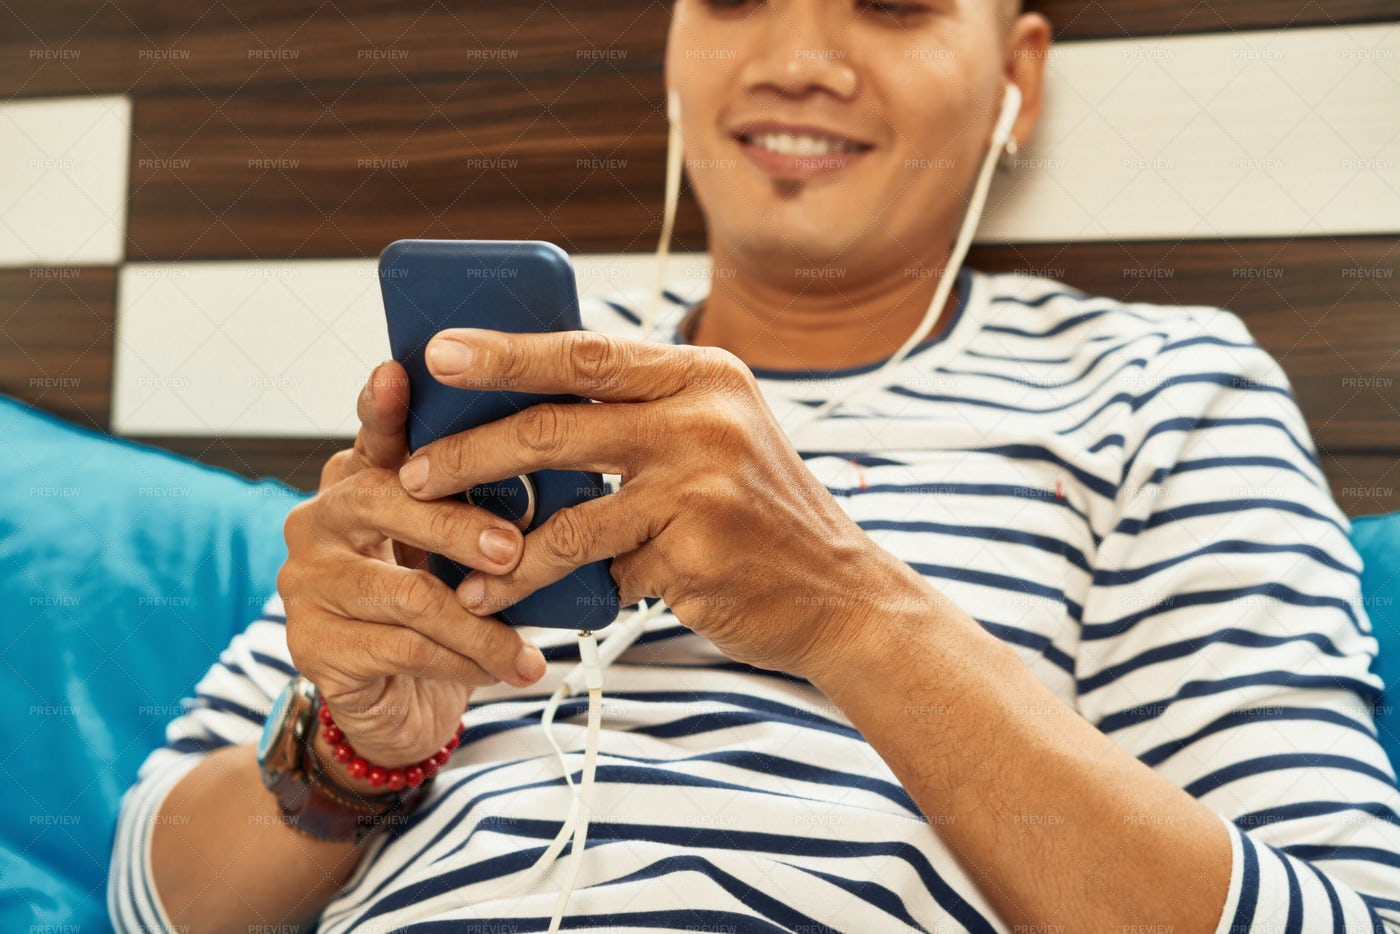 Man Playing Game On Smartphone: Stock Photos